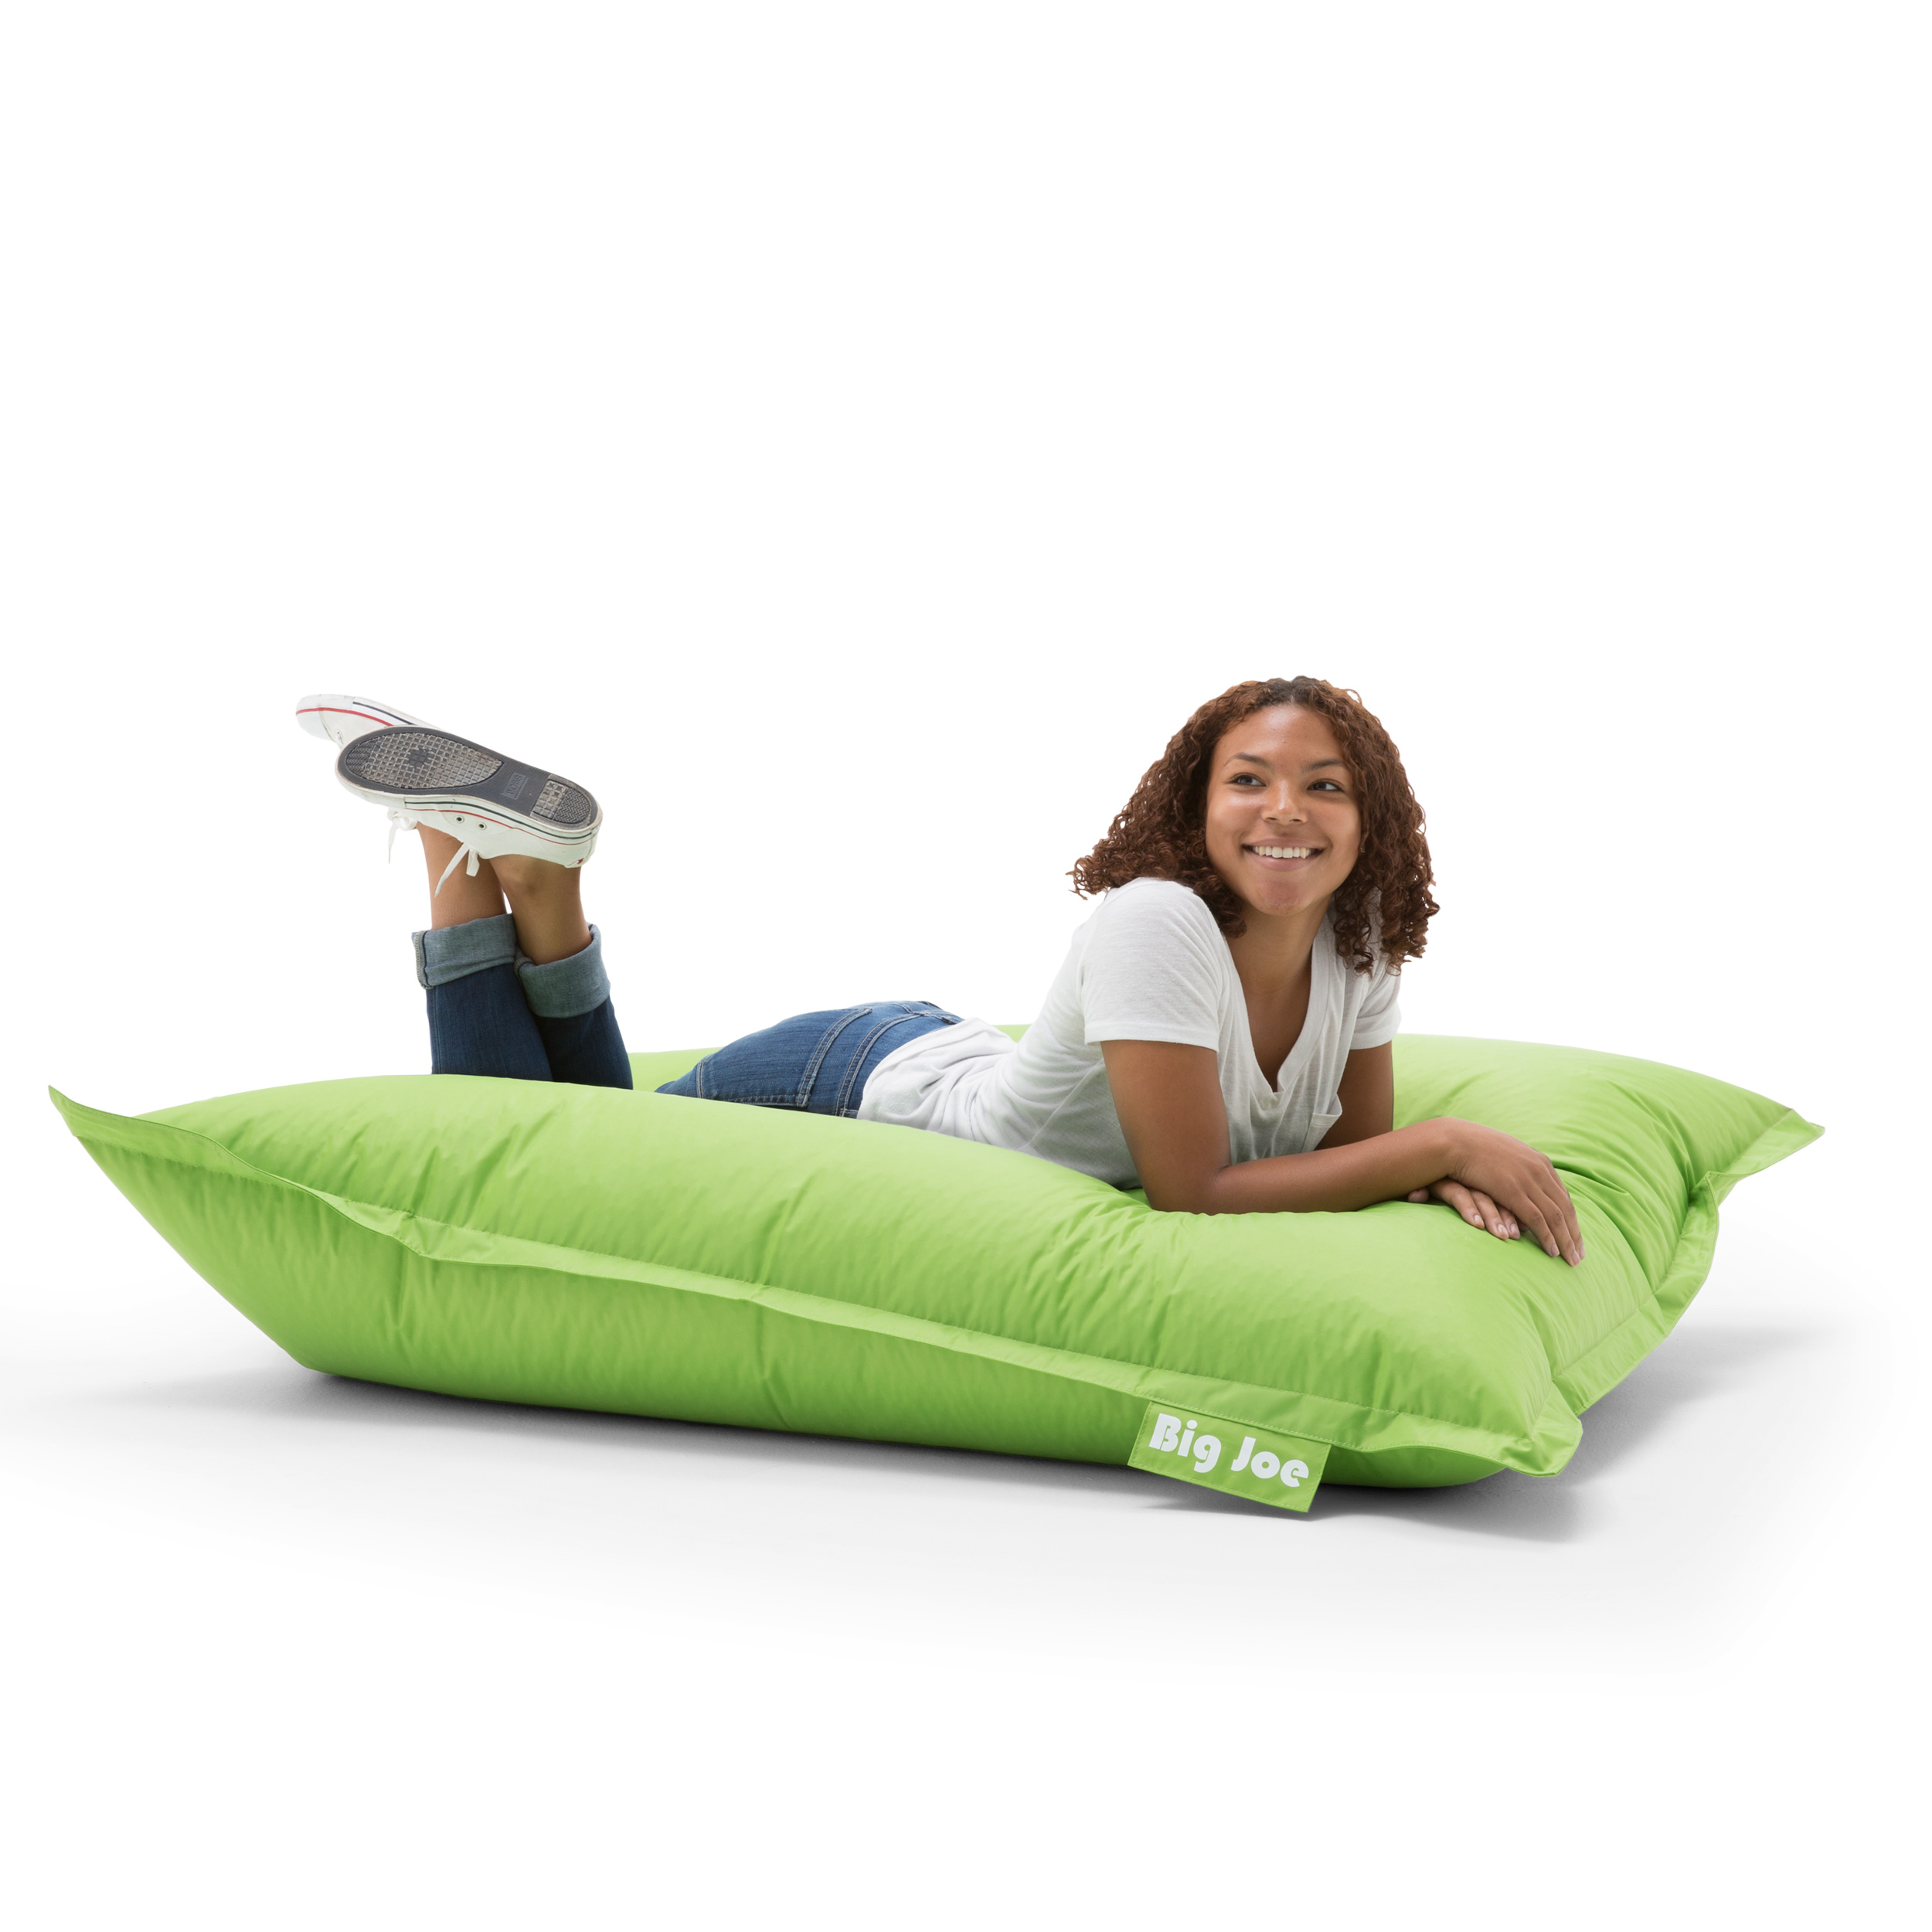 The Original Big Joe Bean Bag, Available in Multiple Colors